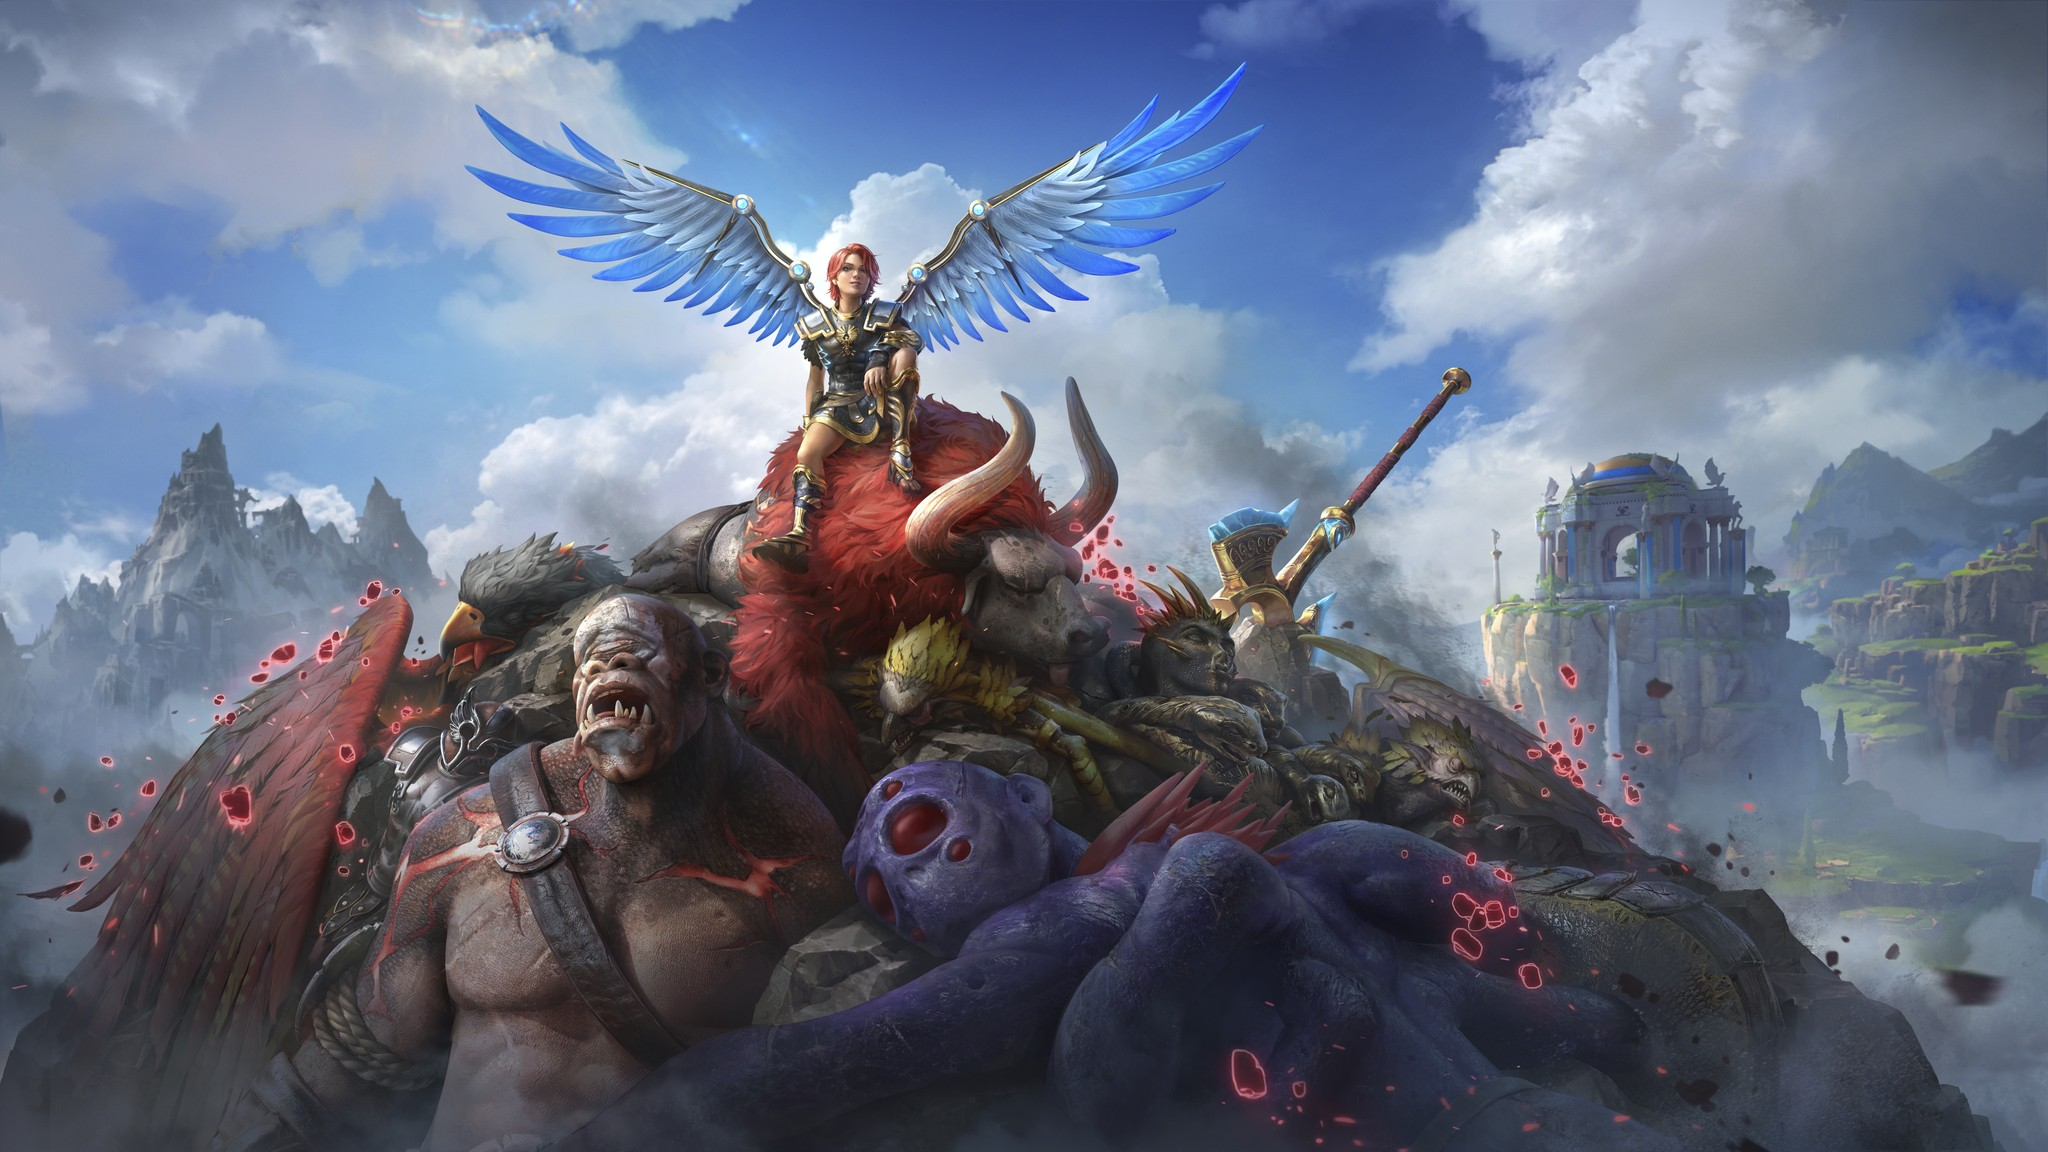 Video For Immortals Fenyx Rising Soars Onto Xbox Series X S and Xbox One